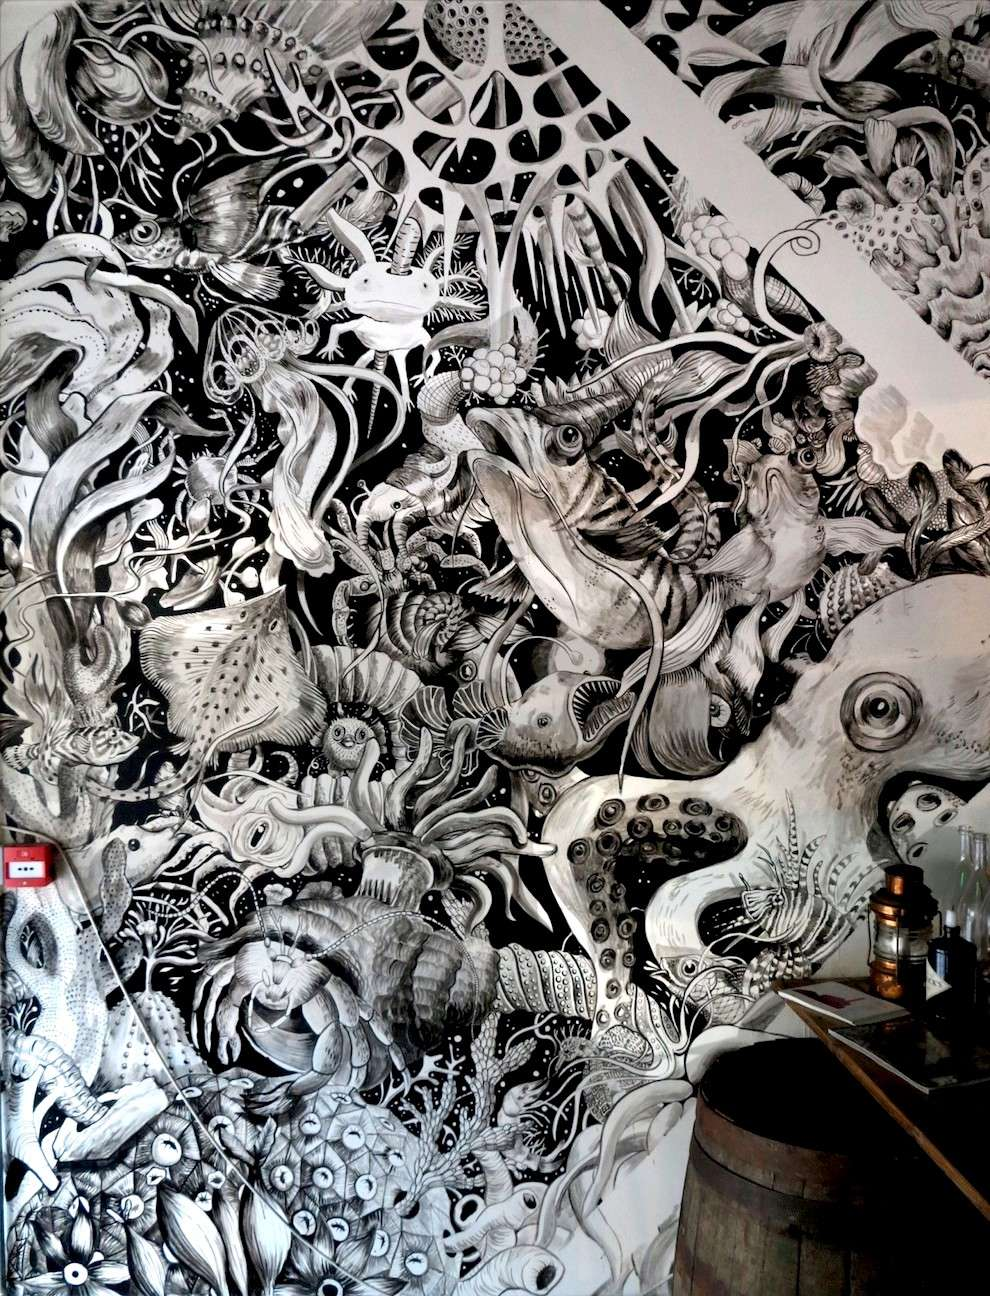 Good Wives & Warriors, black and white hand painted pub mural of a sea scene with sea creatures and fishes